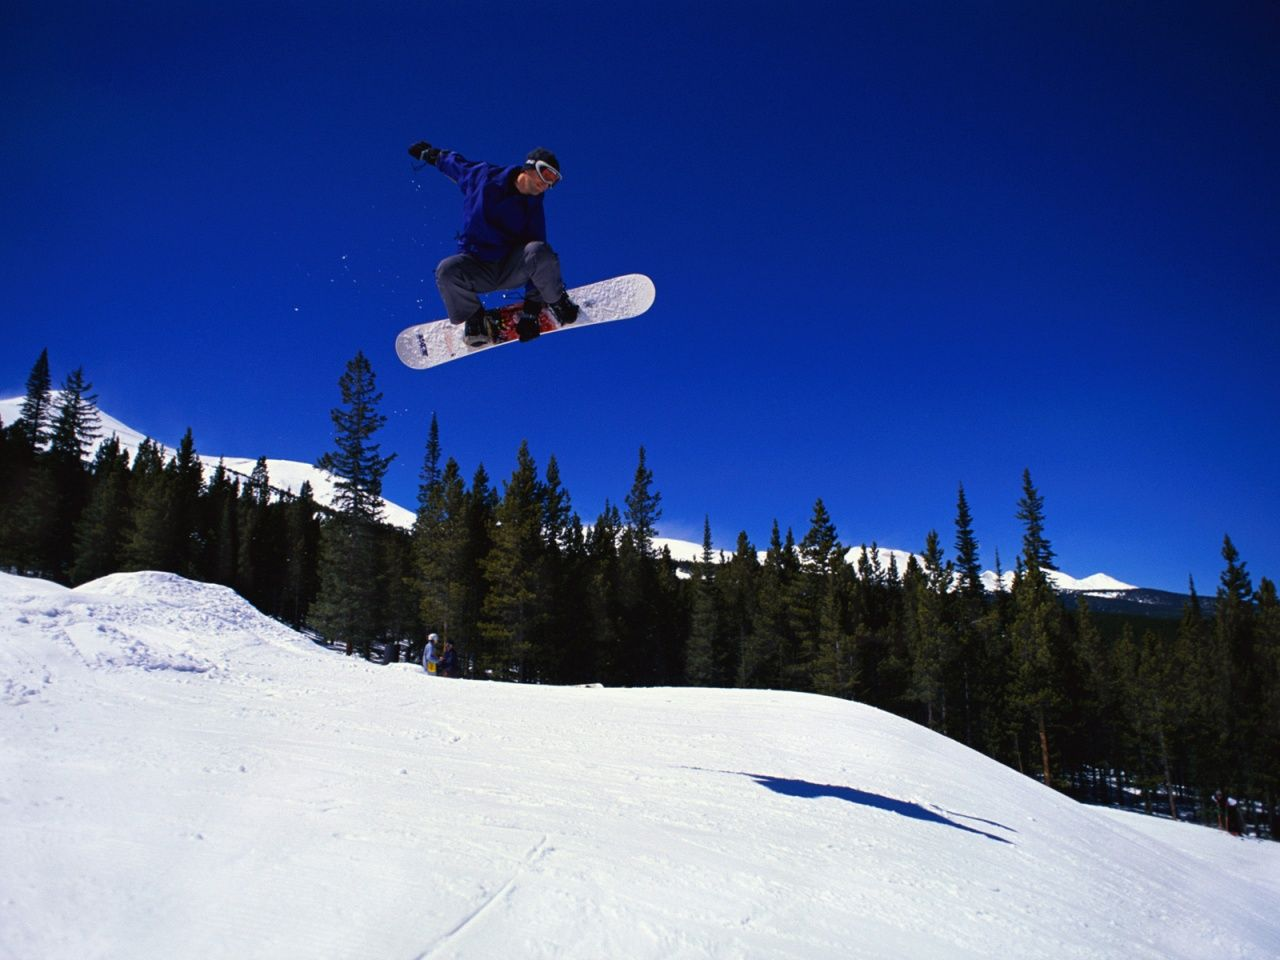 Learn to snowboard...check. Learn to snowboard well...still working on it :)